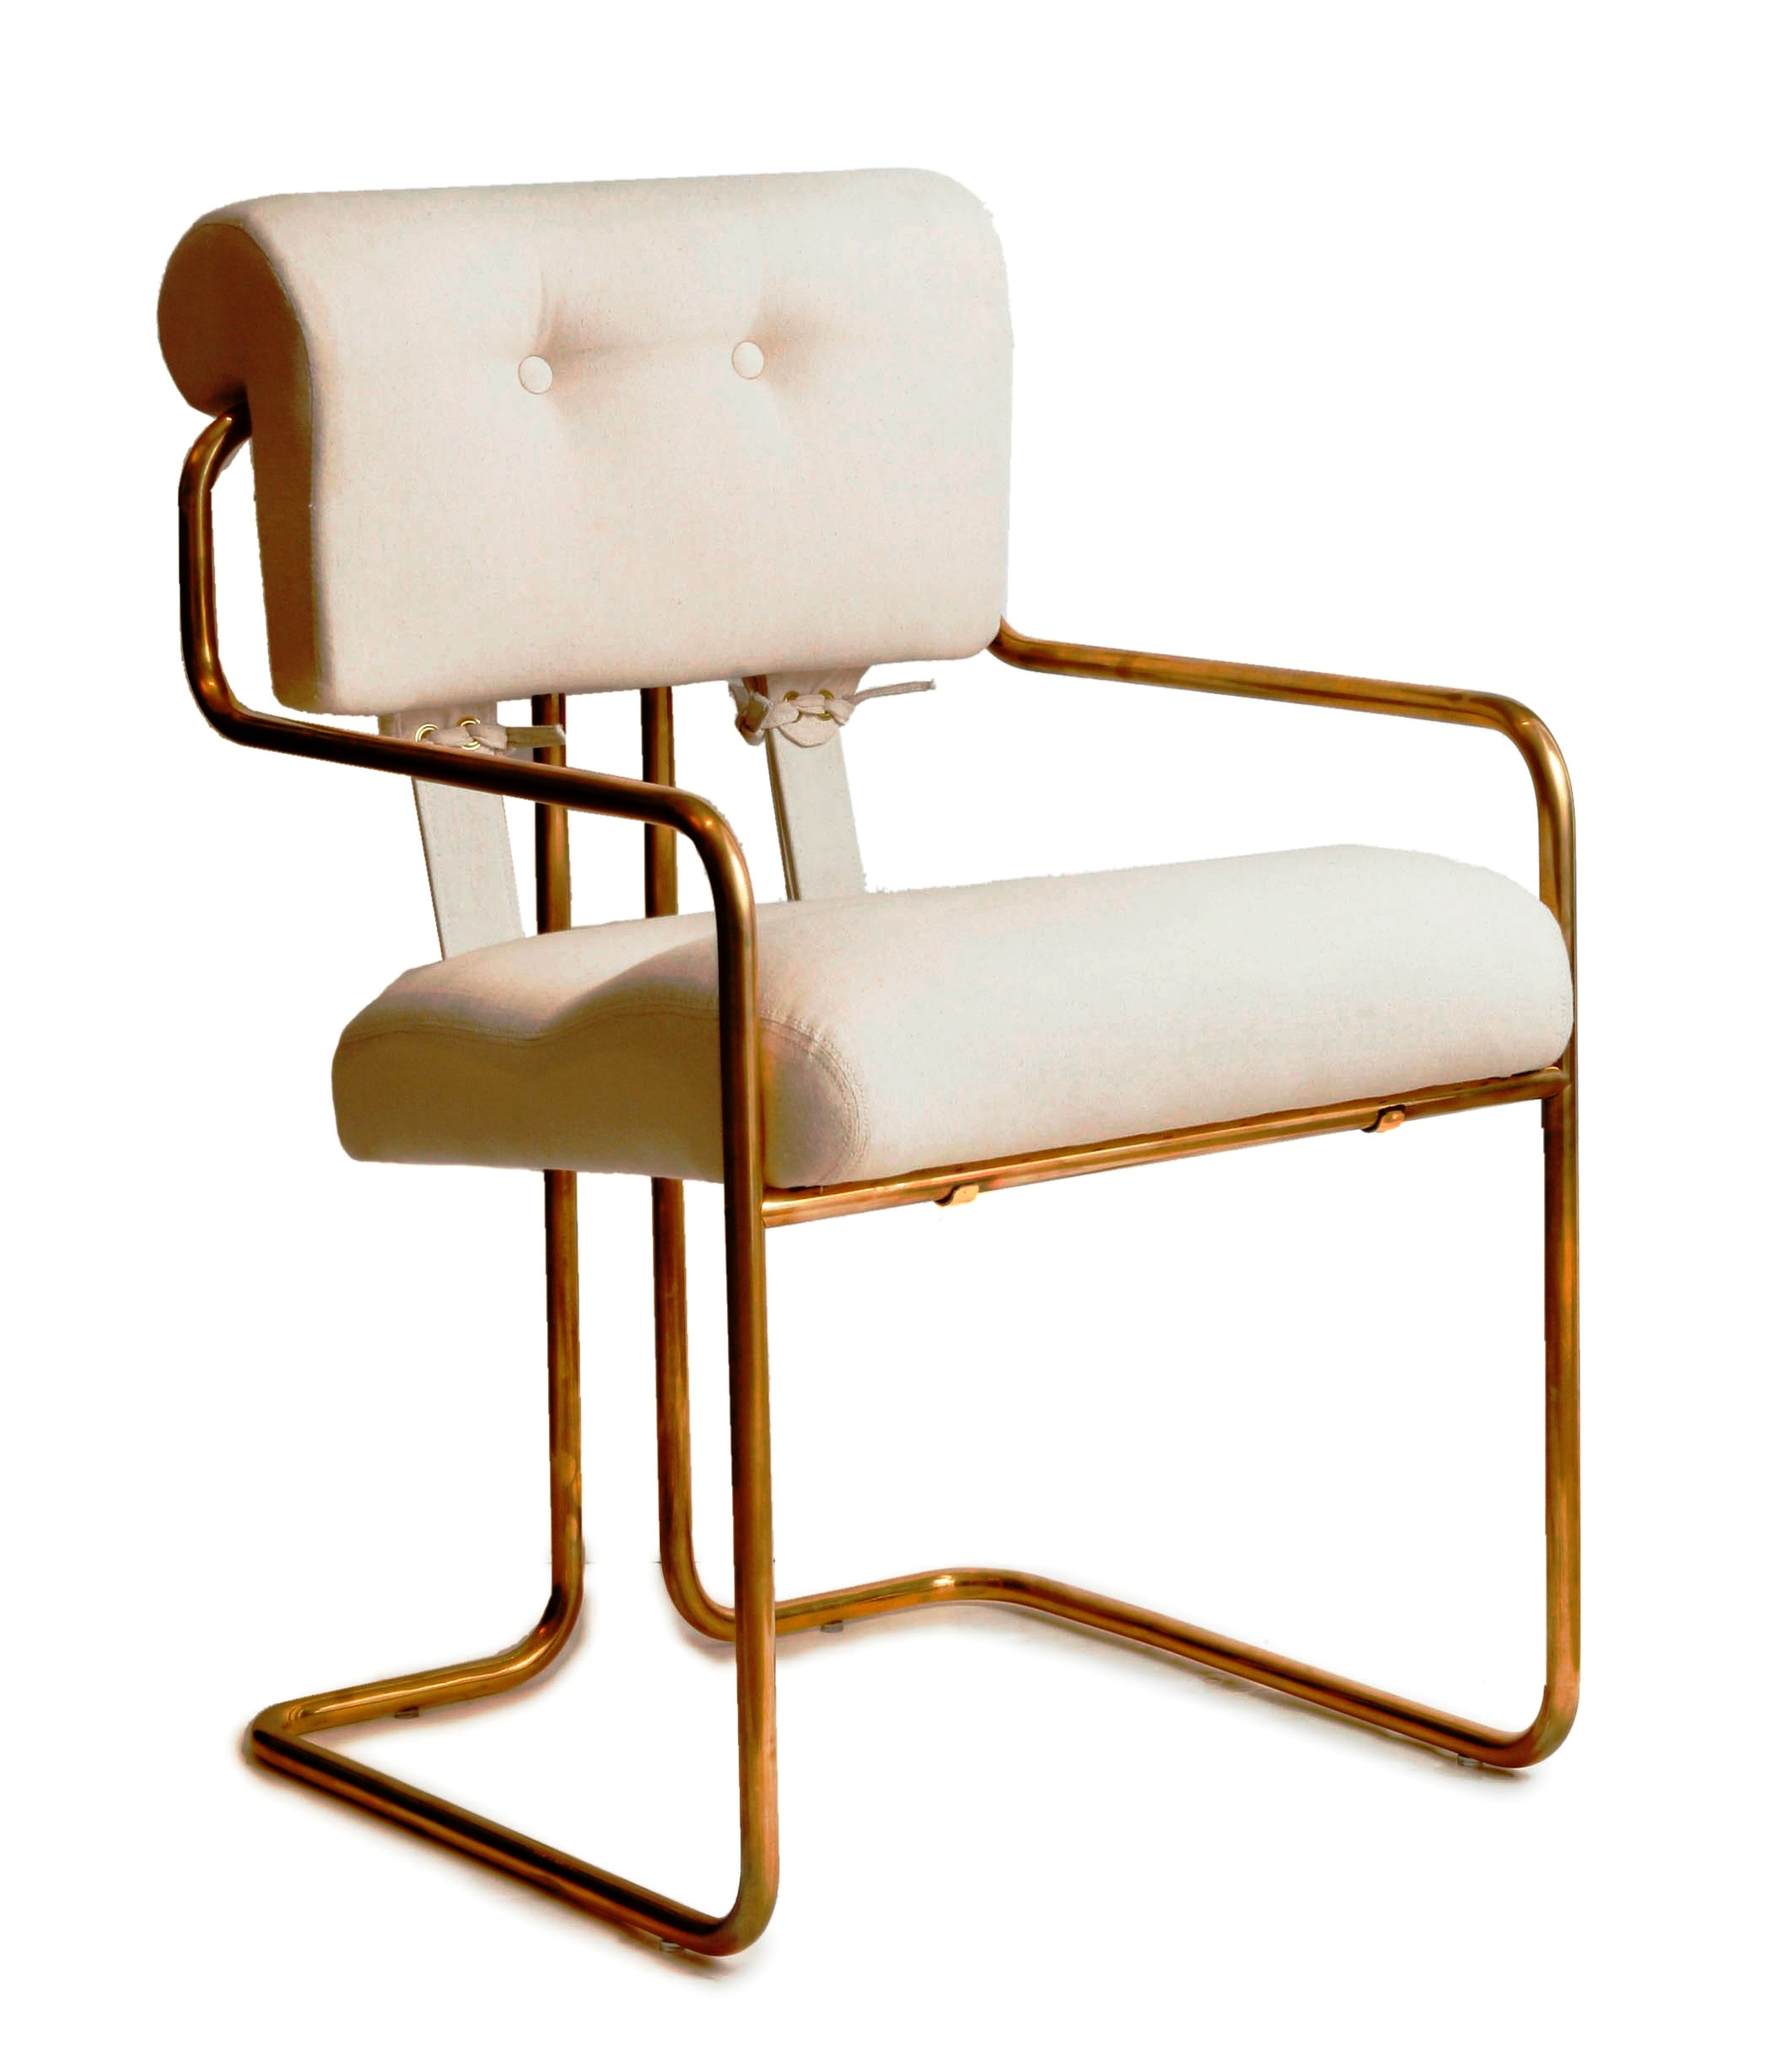 mid century wood chair mid century modern dining room chairs kristen buckingham pace chair by kb bespoke furniture dining room brass metal